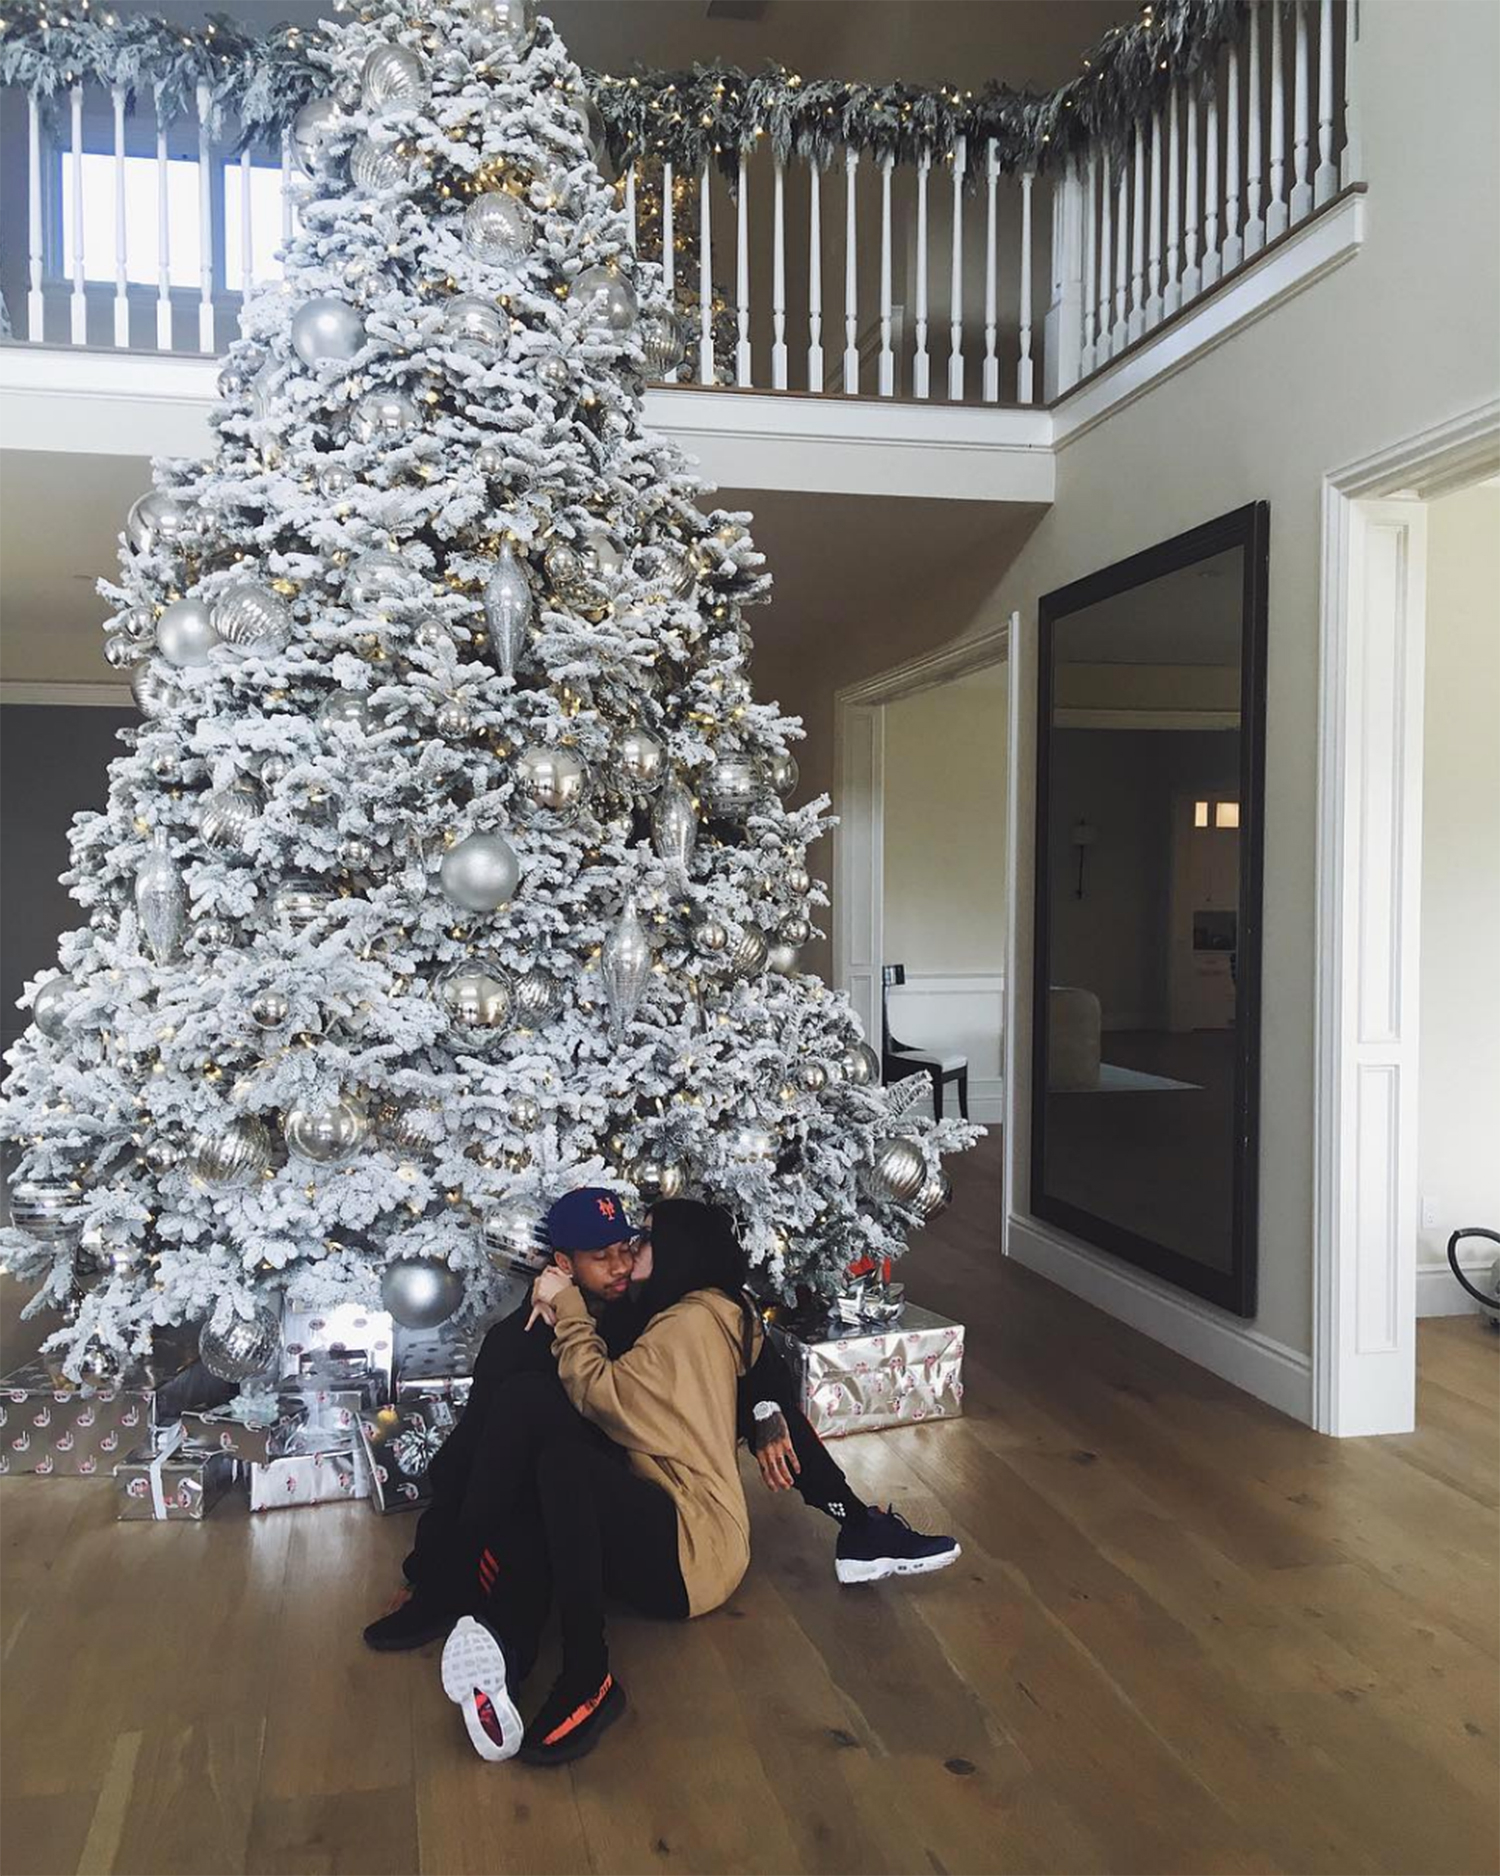 Kylie Jenner Kisses Tyga in Front of Christmas Tree in Sweet Pic